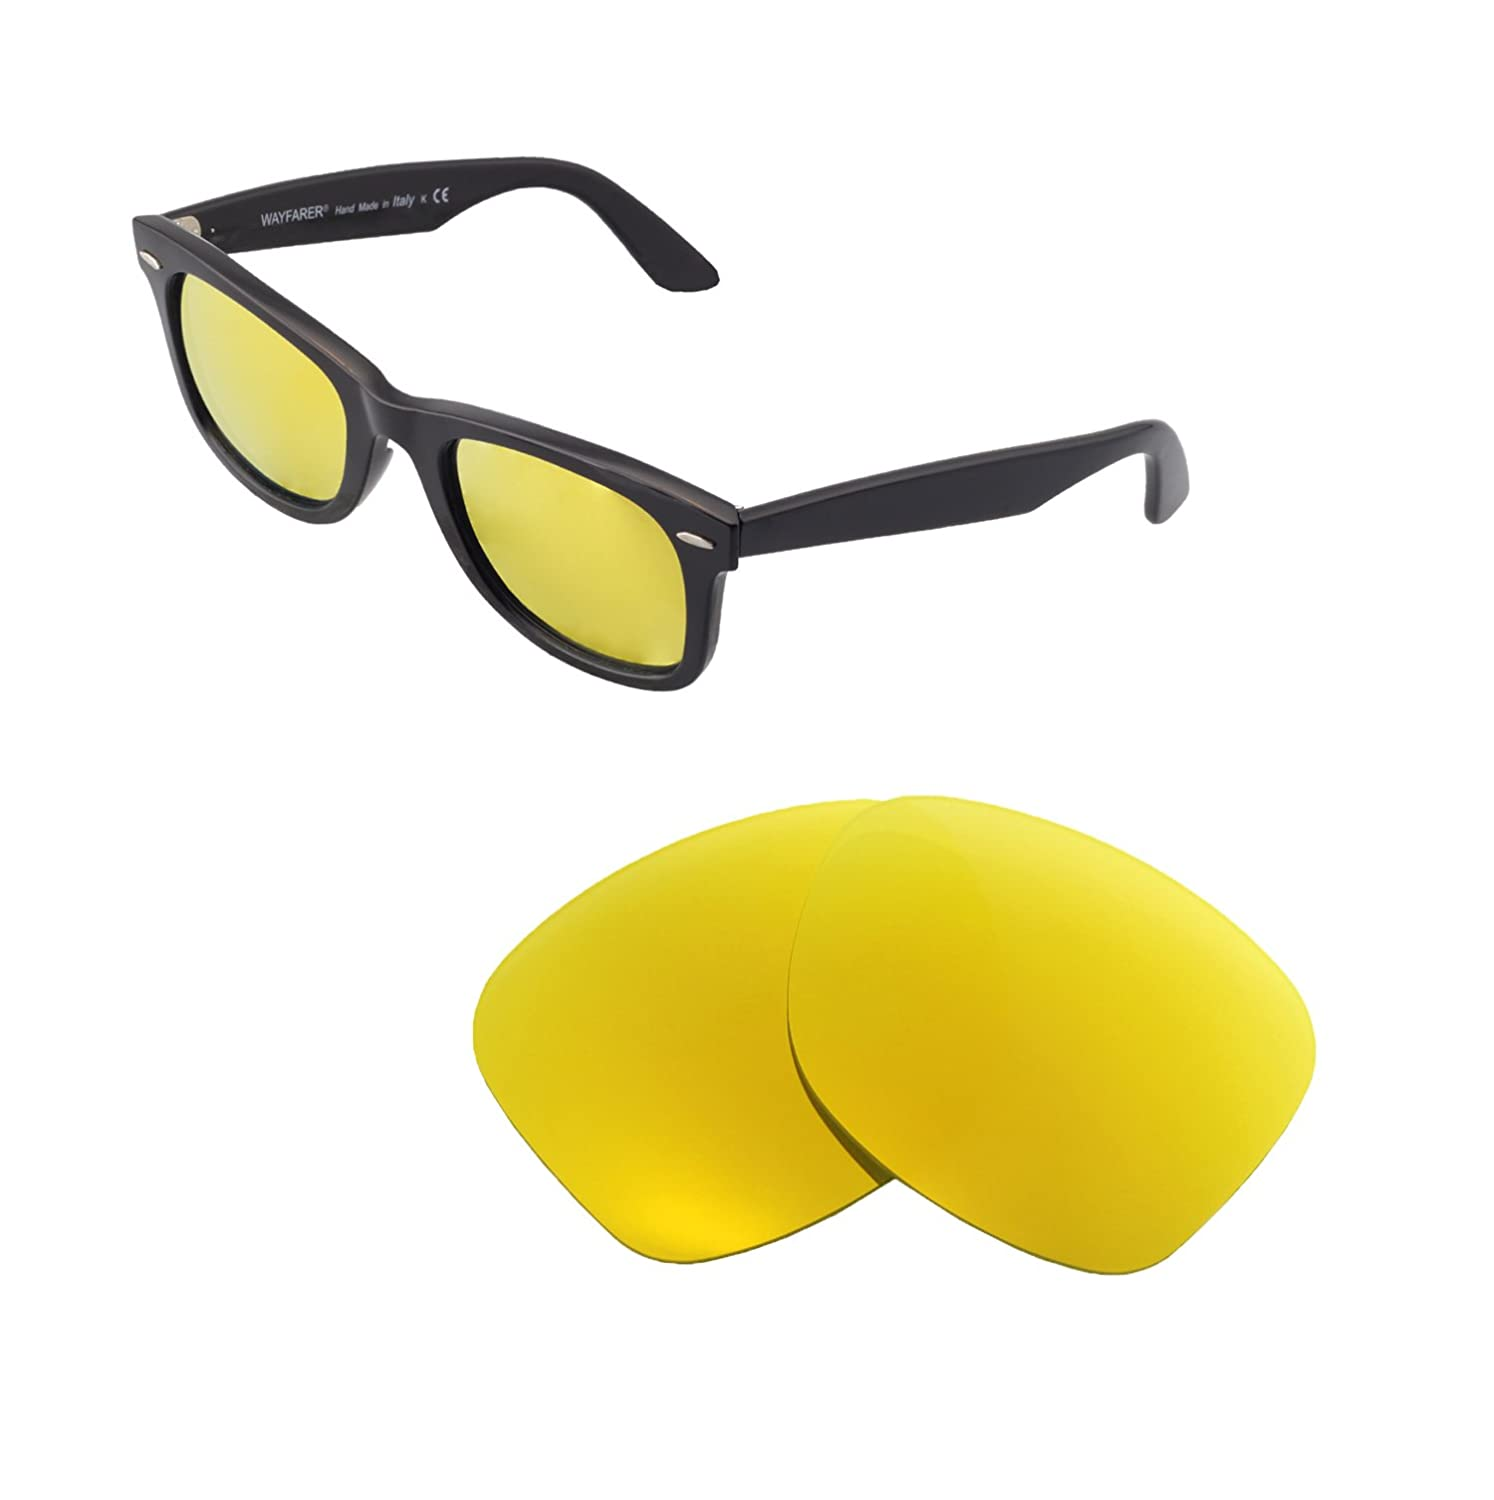 c943d594831 Amazon.com  Walleva Replacement Lenses for Ray-Ban Wayfarer RB2140 50mm- 5  Options (24K Gold - Polarized)  Clothing